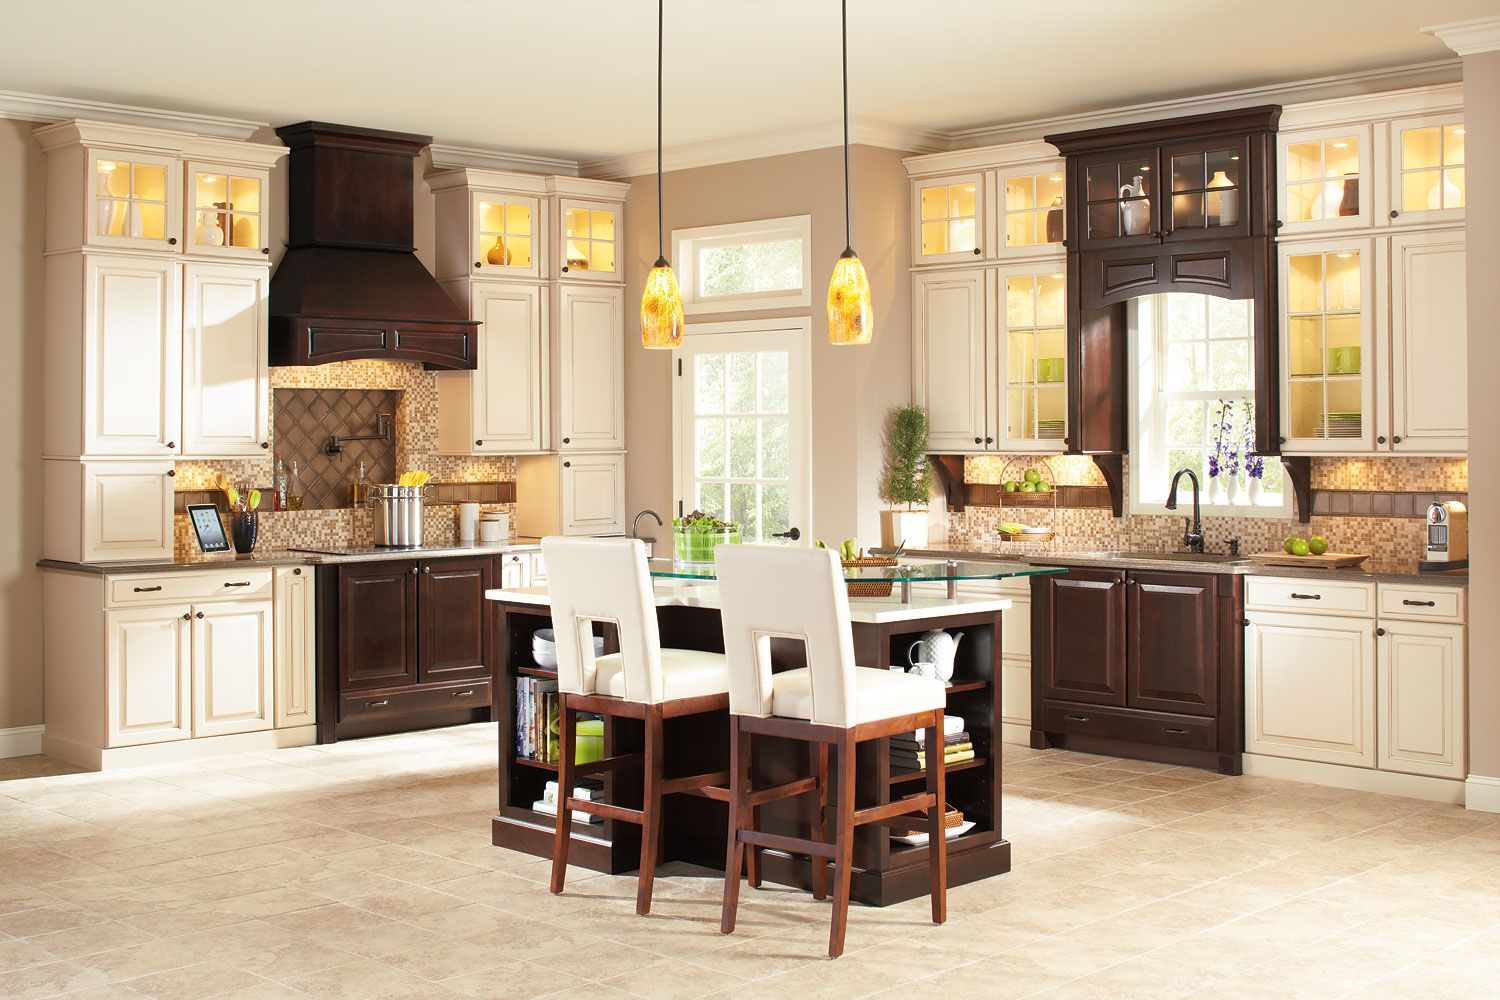 Two Toned Timberlake Cabinets With Chimney And Hood Accent Interiors Quality Kitchen Cabinets Corner Kitchen Cabinet Kitchen Redo